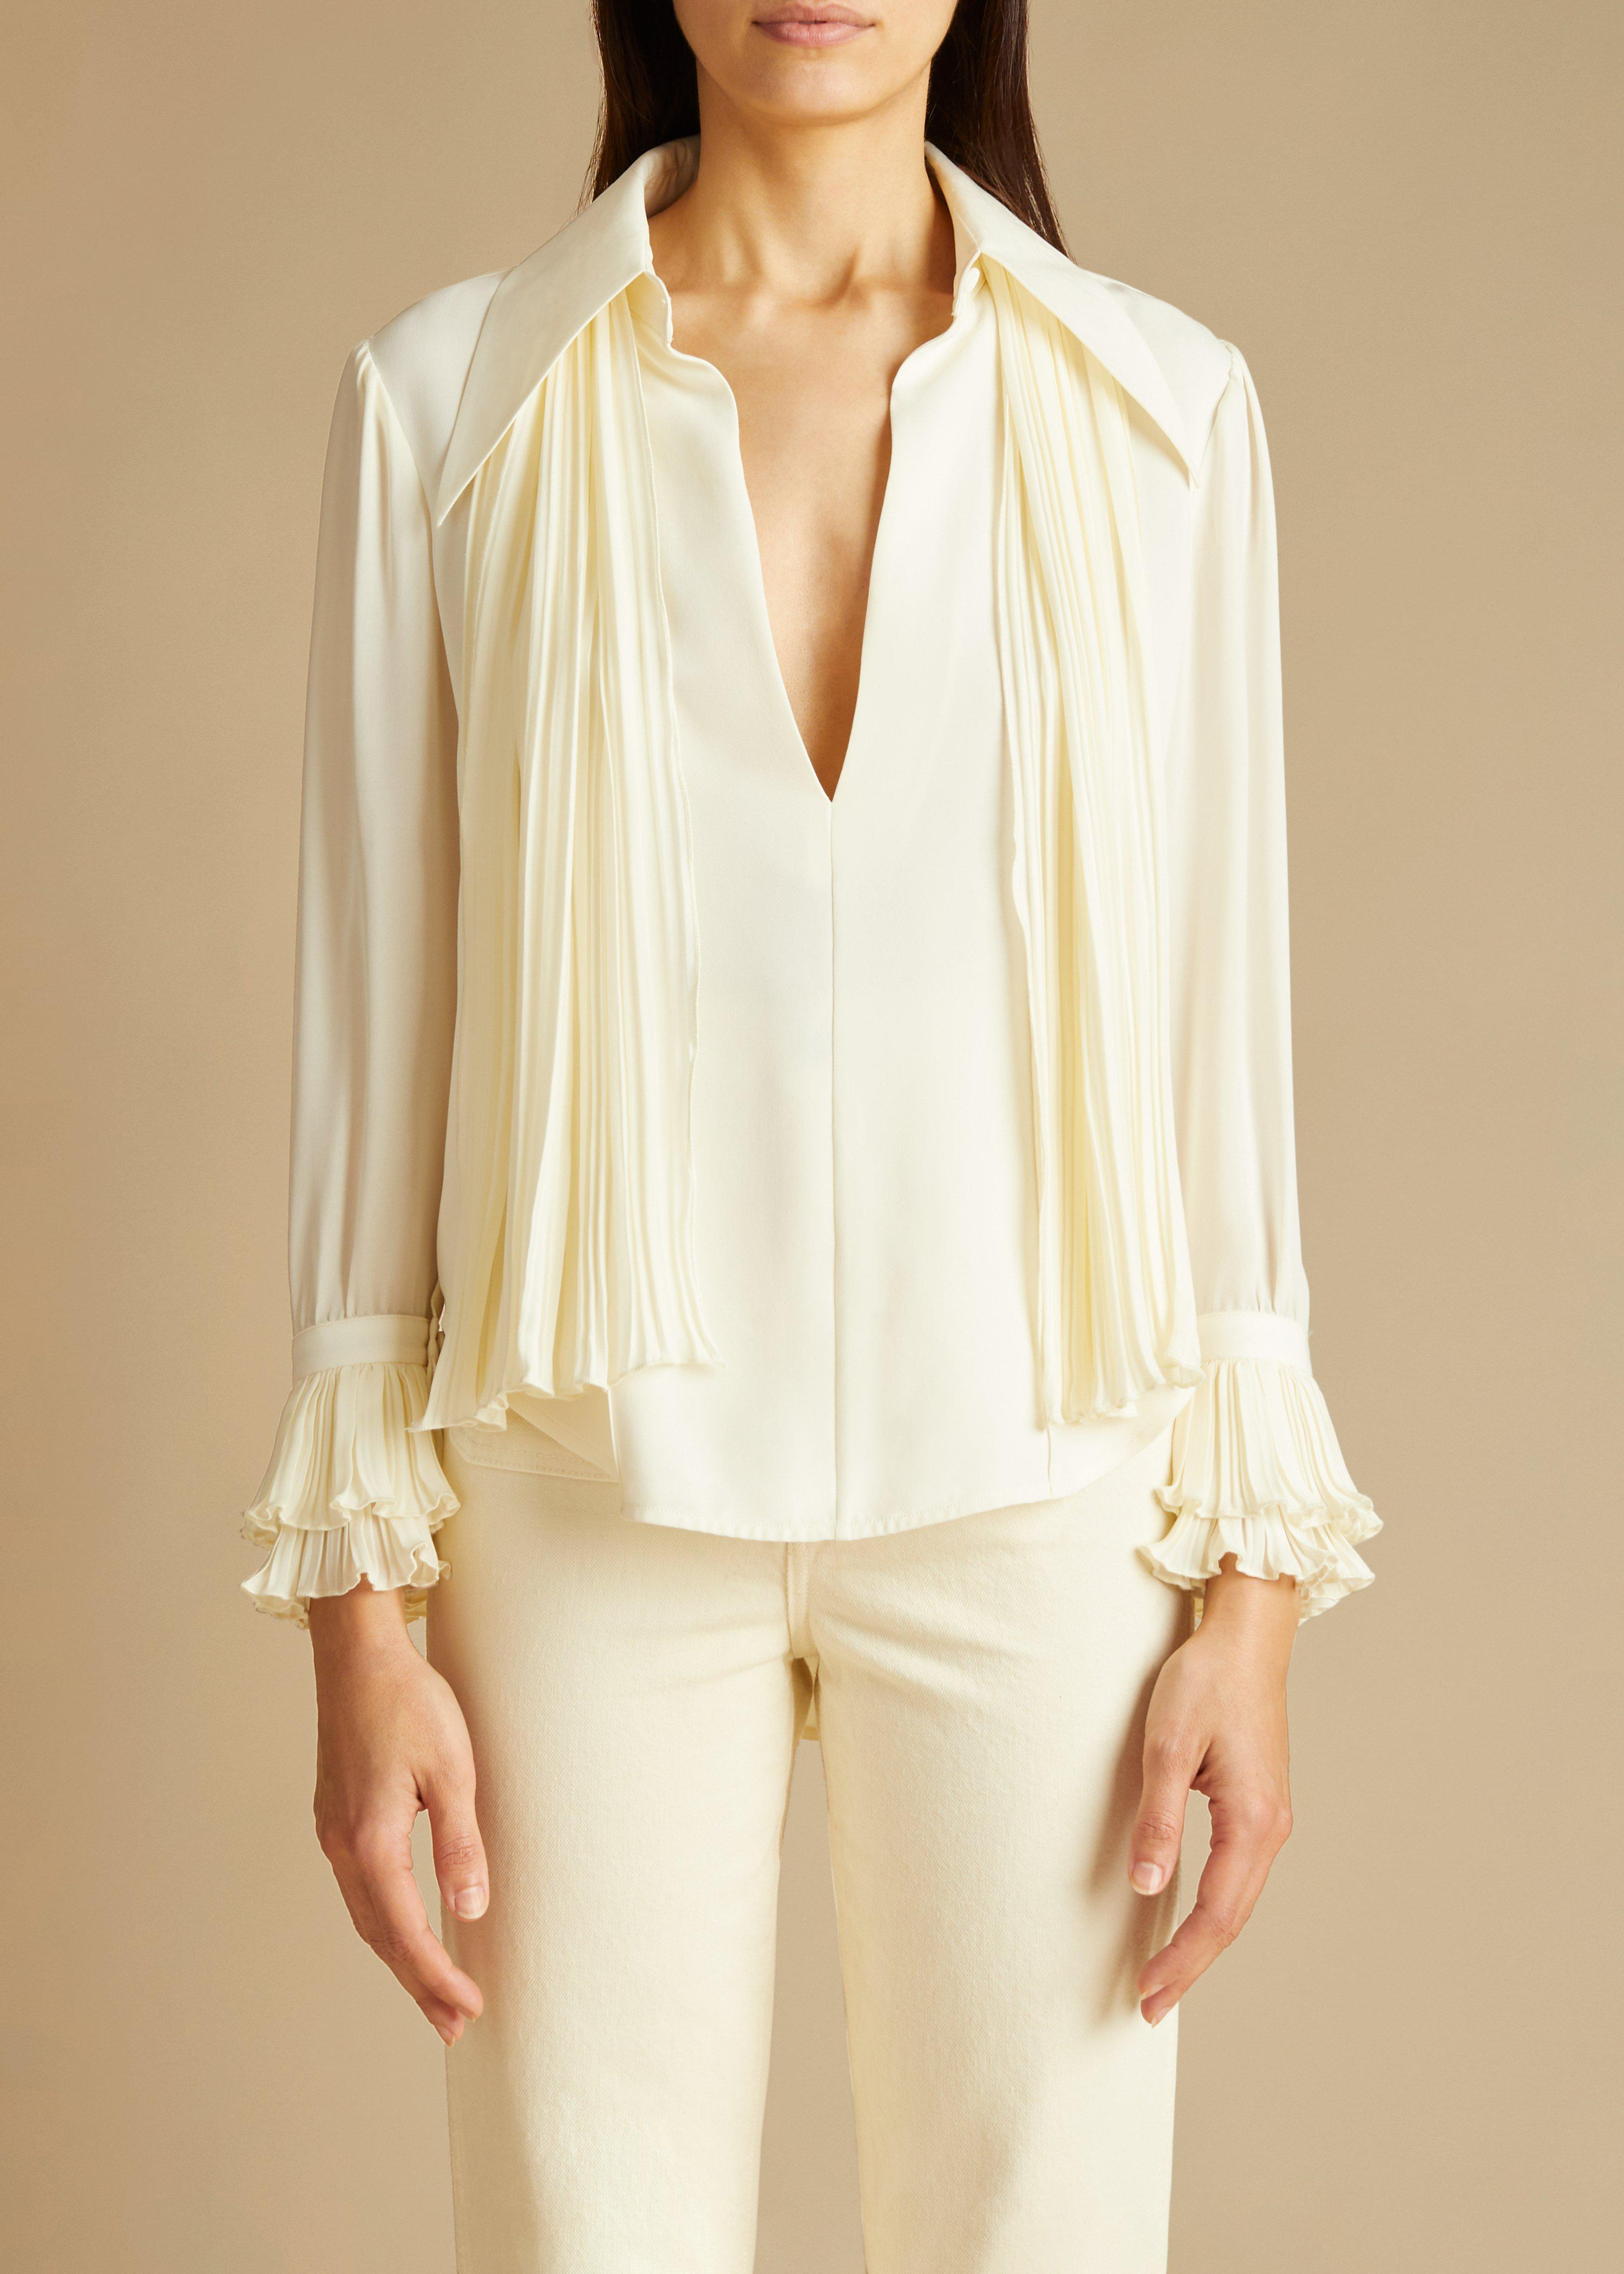 The Nia Top in Ivory 0